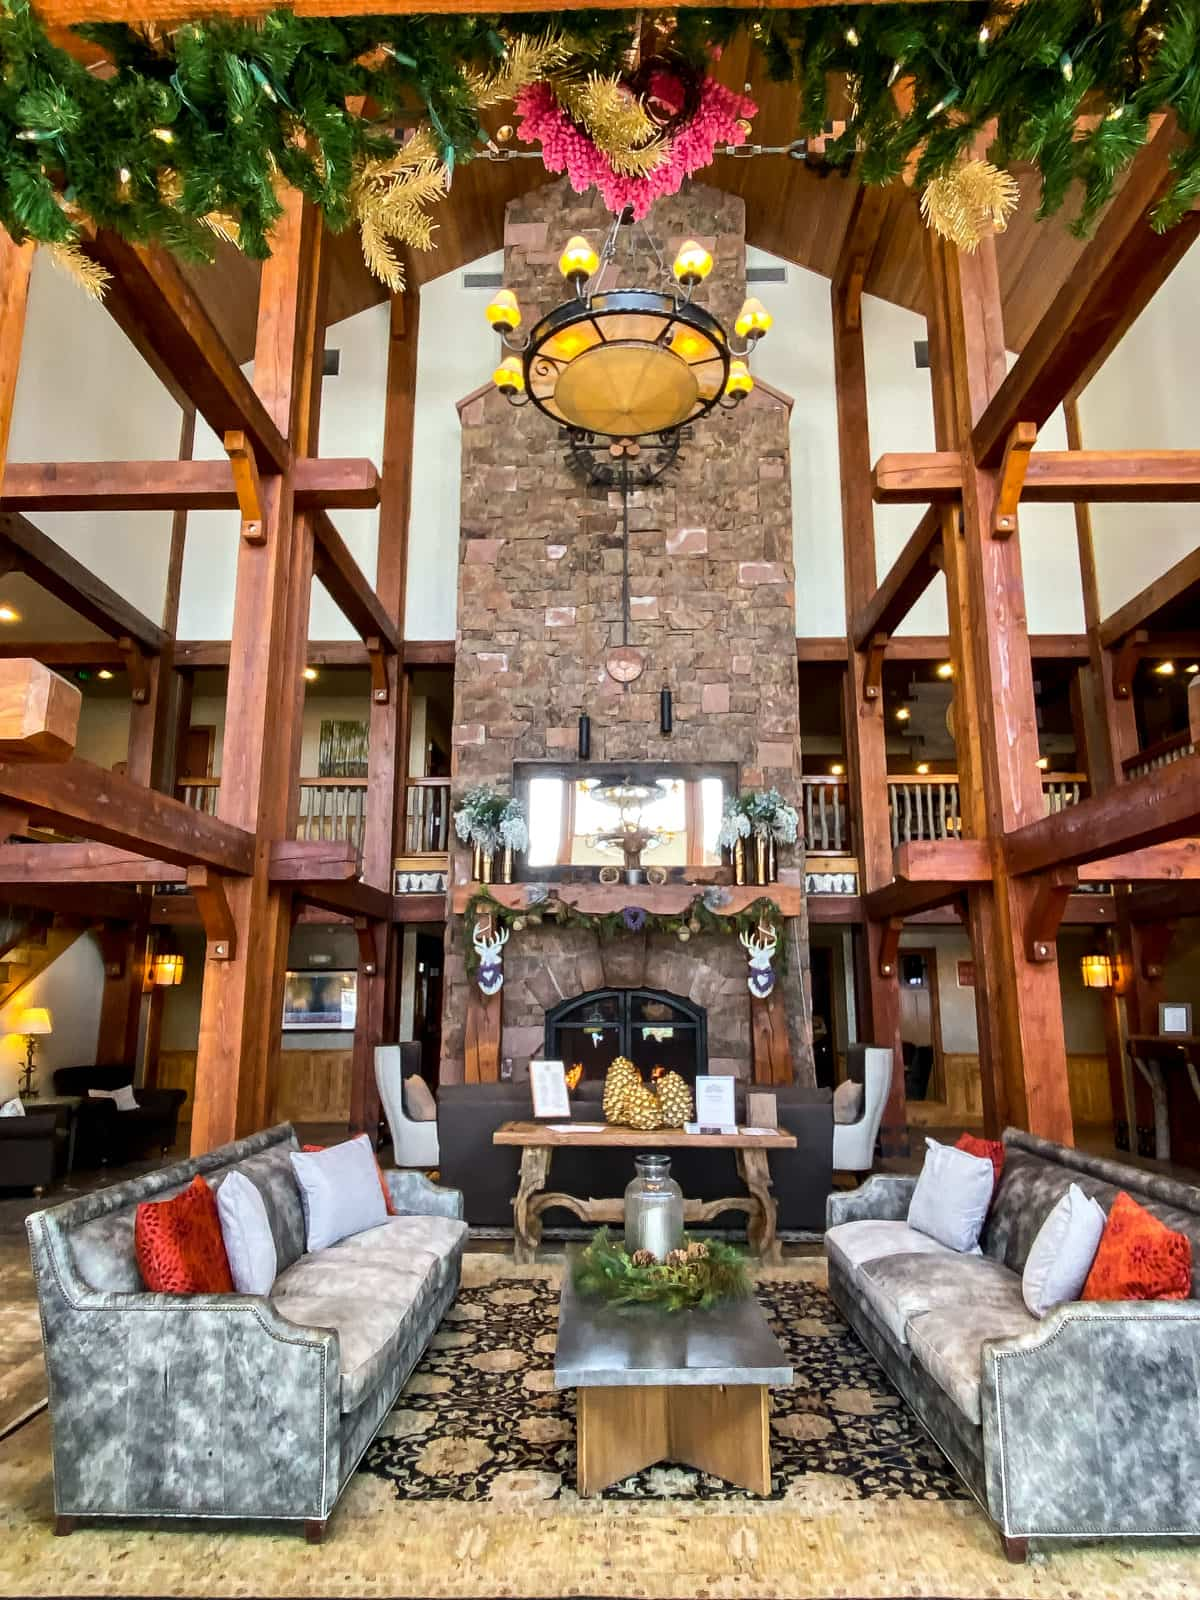 A cozy and well appointed lobby at the Deer Valley Resort